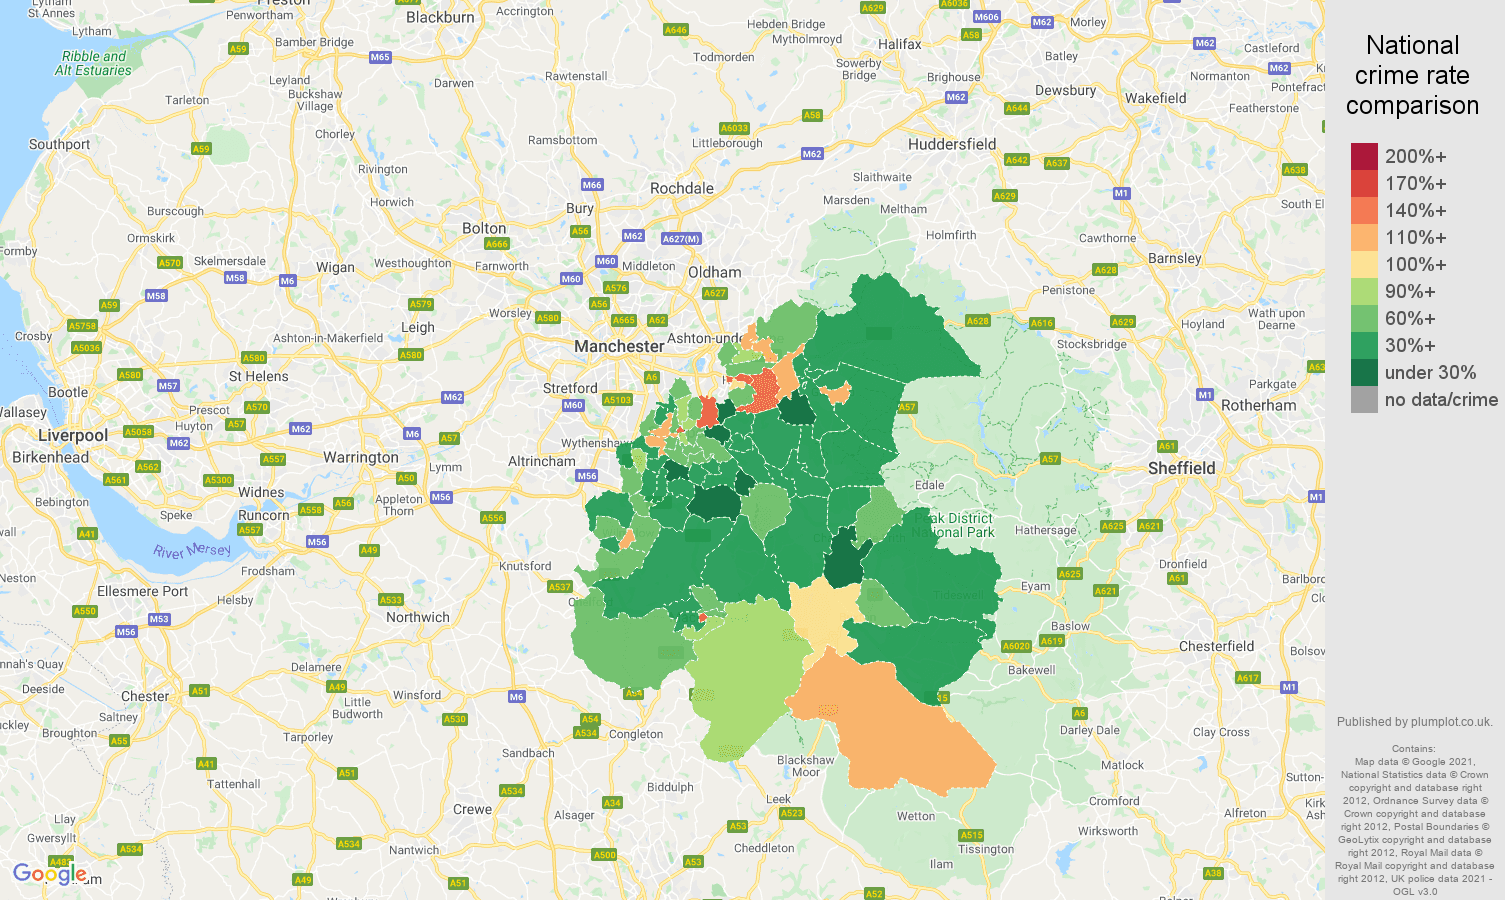 Stockport other theft crime rate comparison map